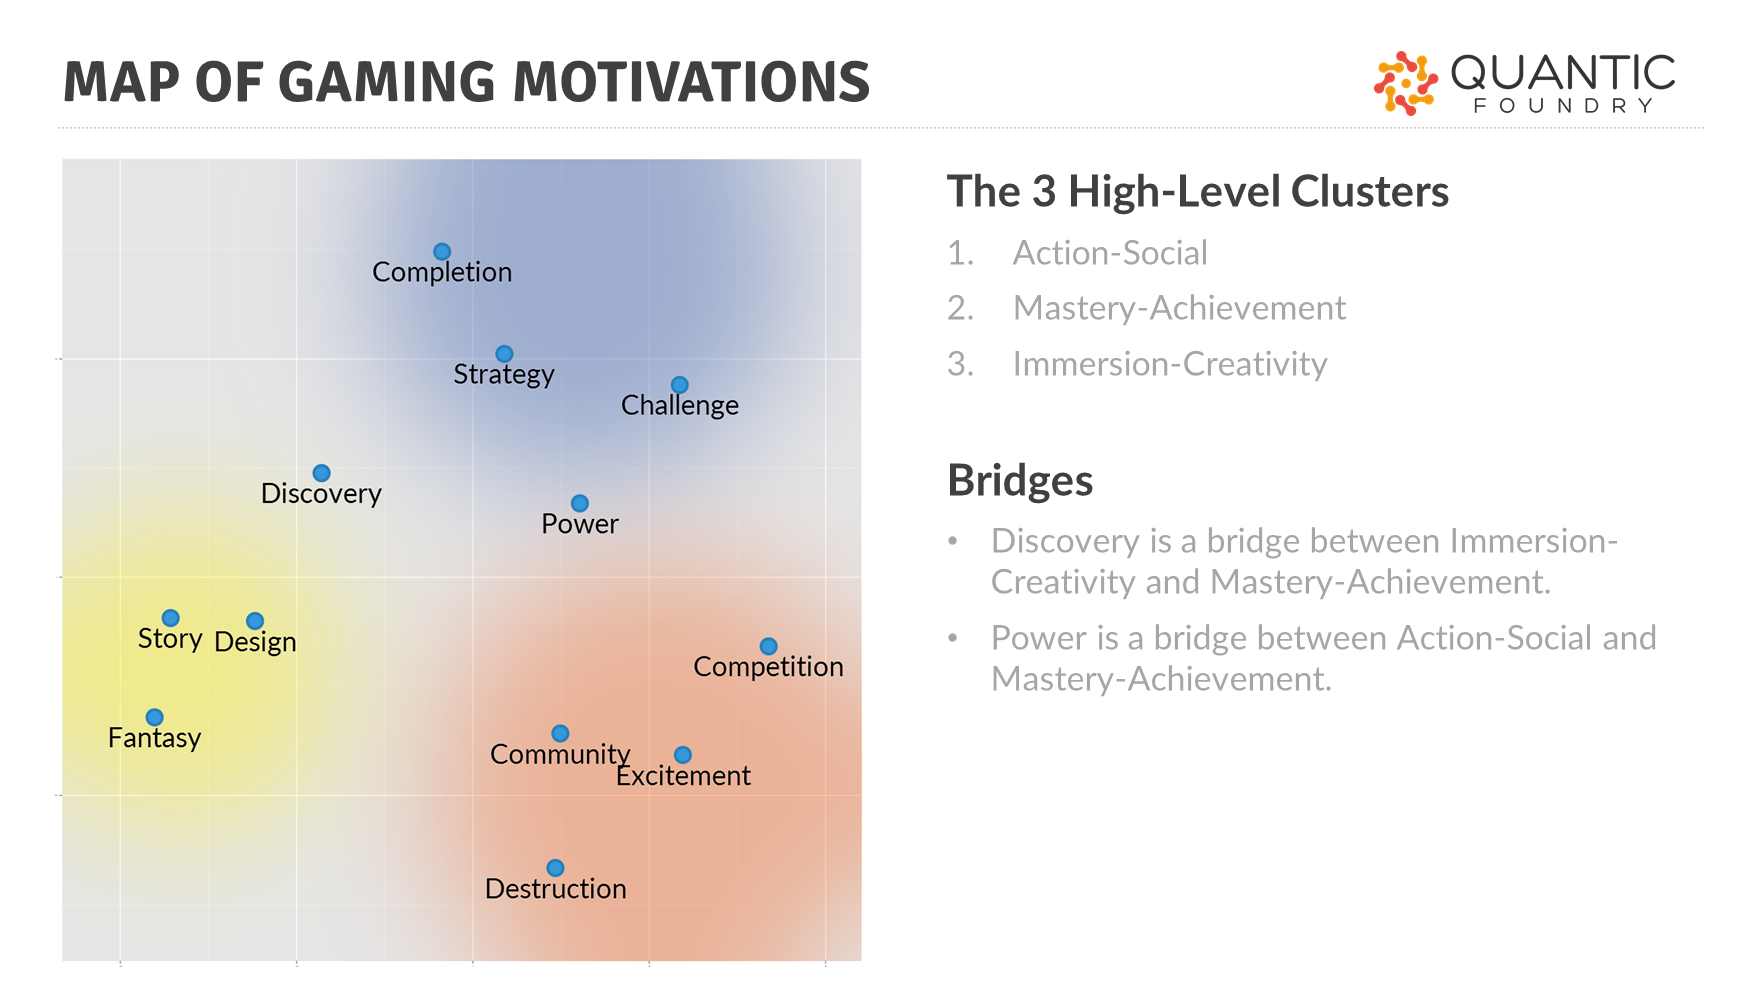 Gaming Motivations Group Into 3 High-Level Clusters